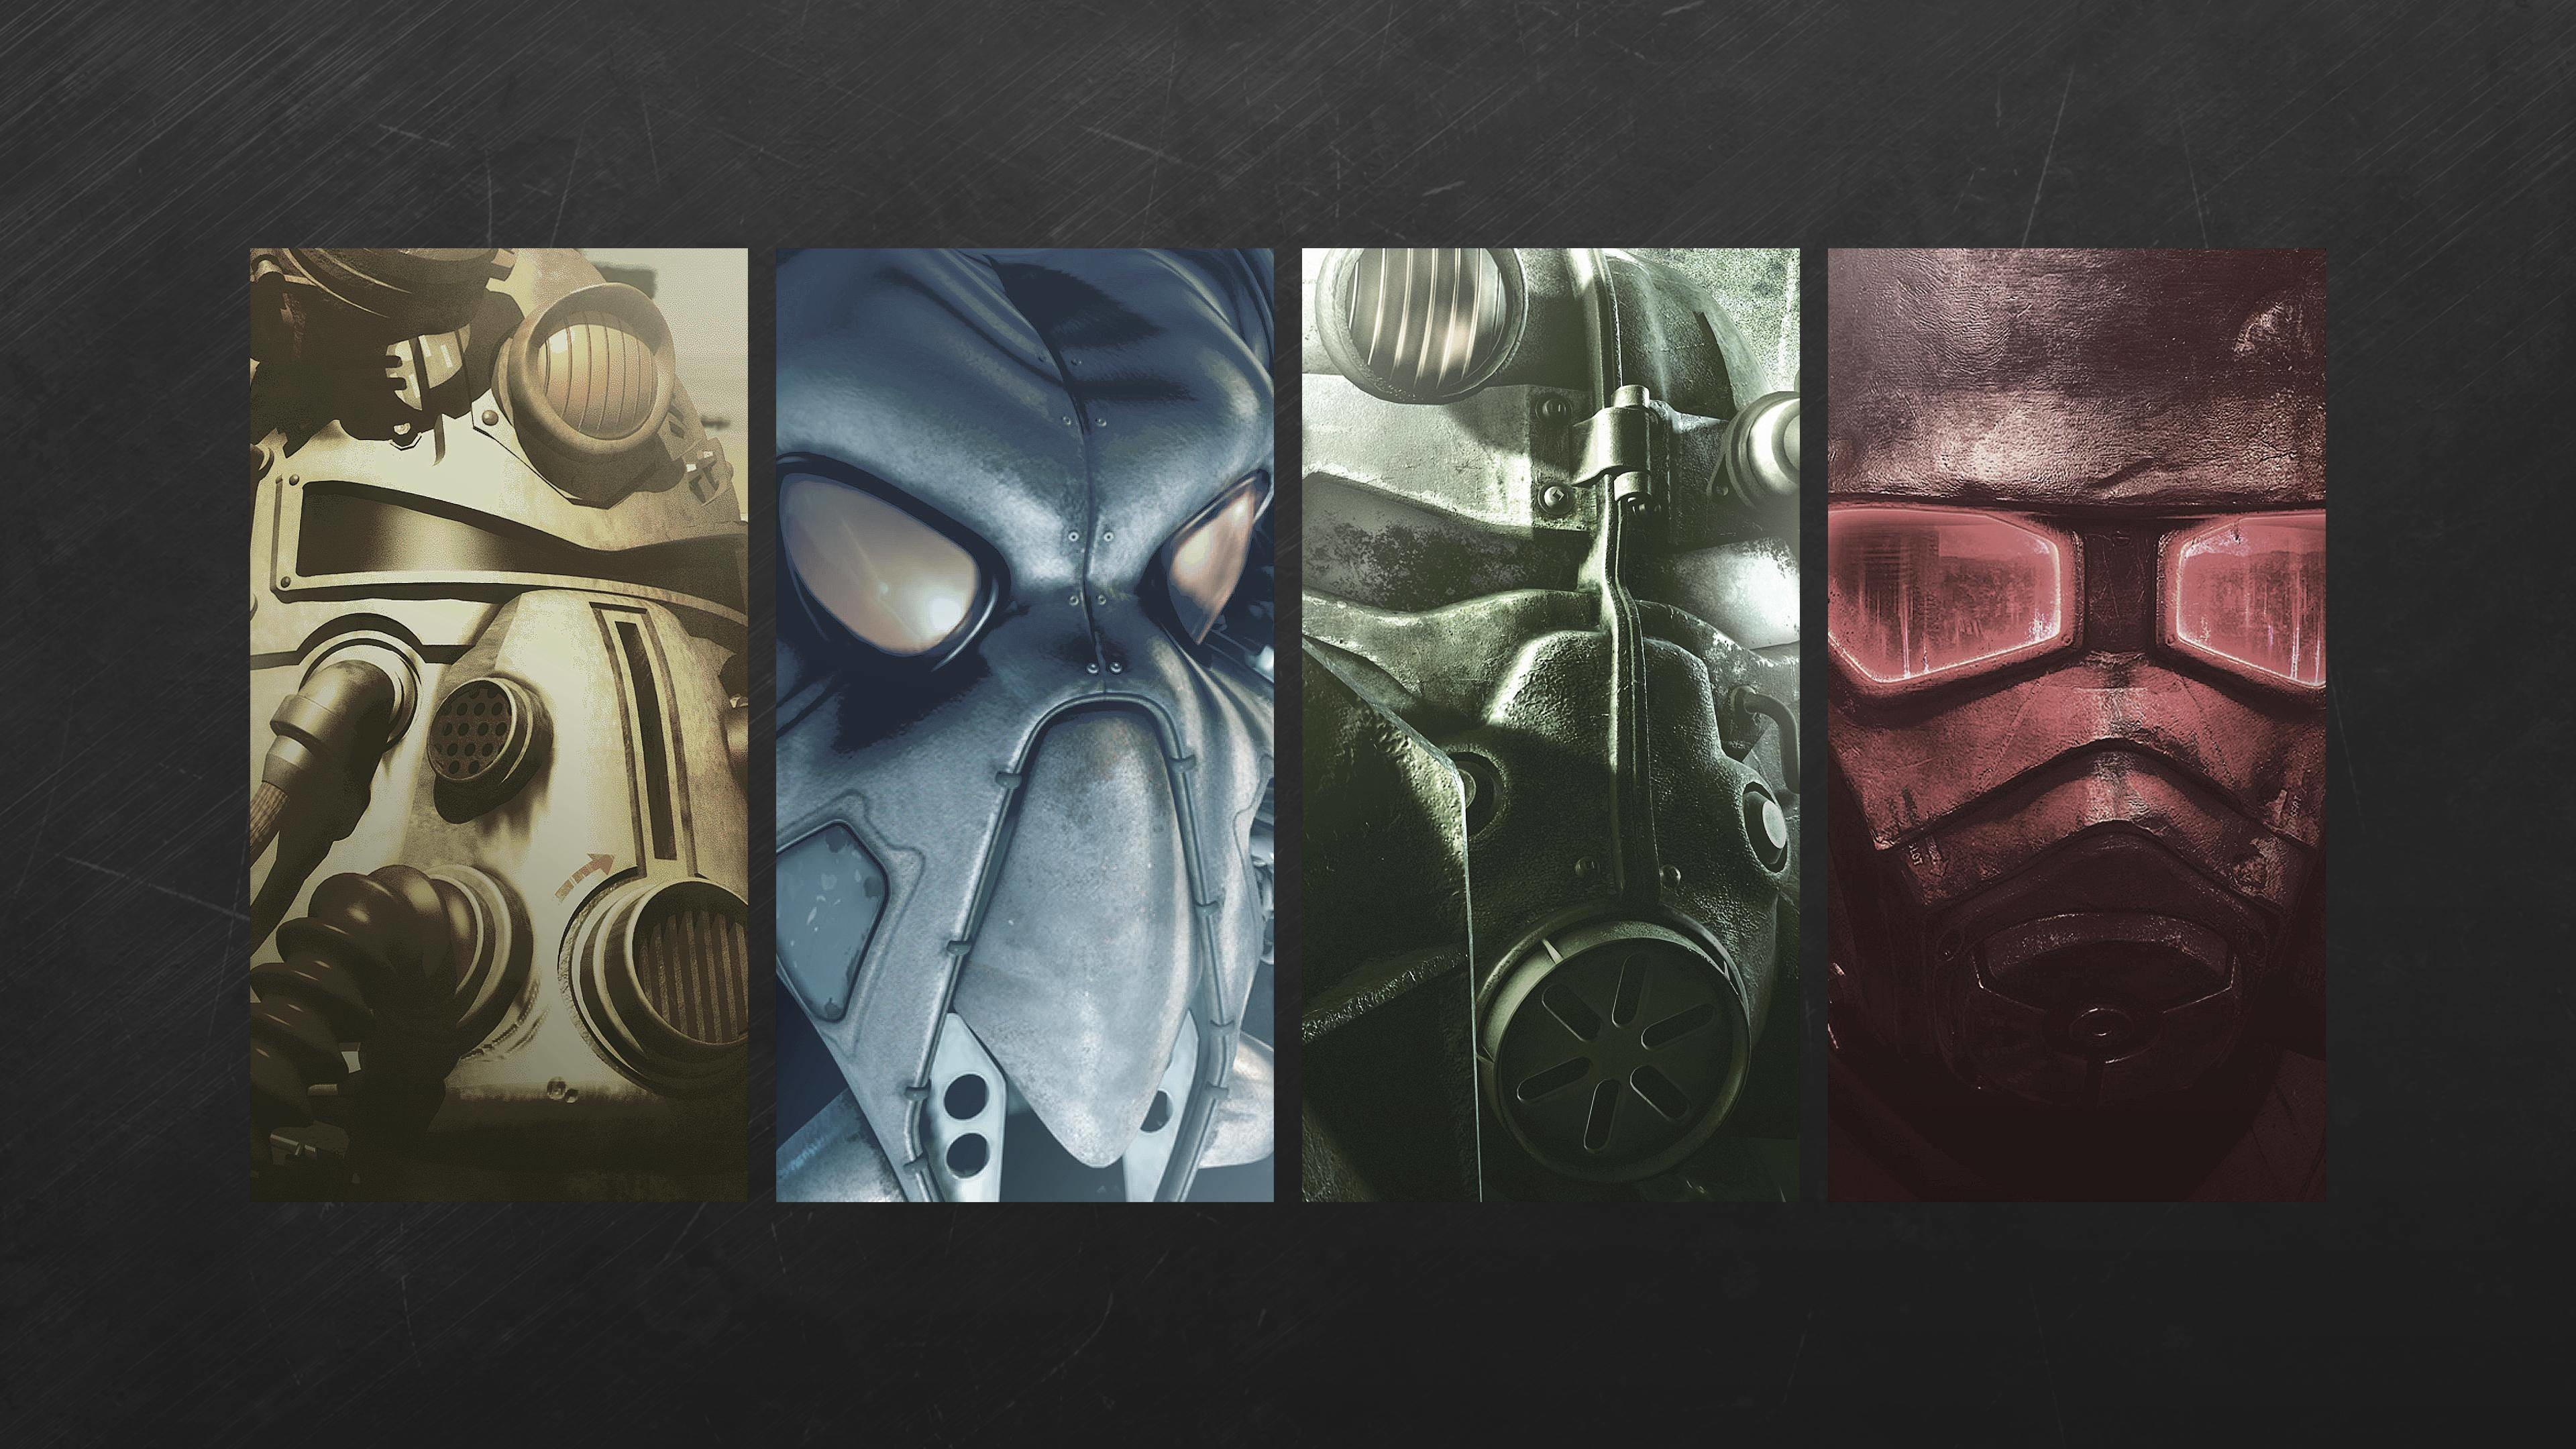 Res: 3840x2160, Fallout Wallpaper Images